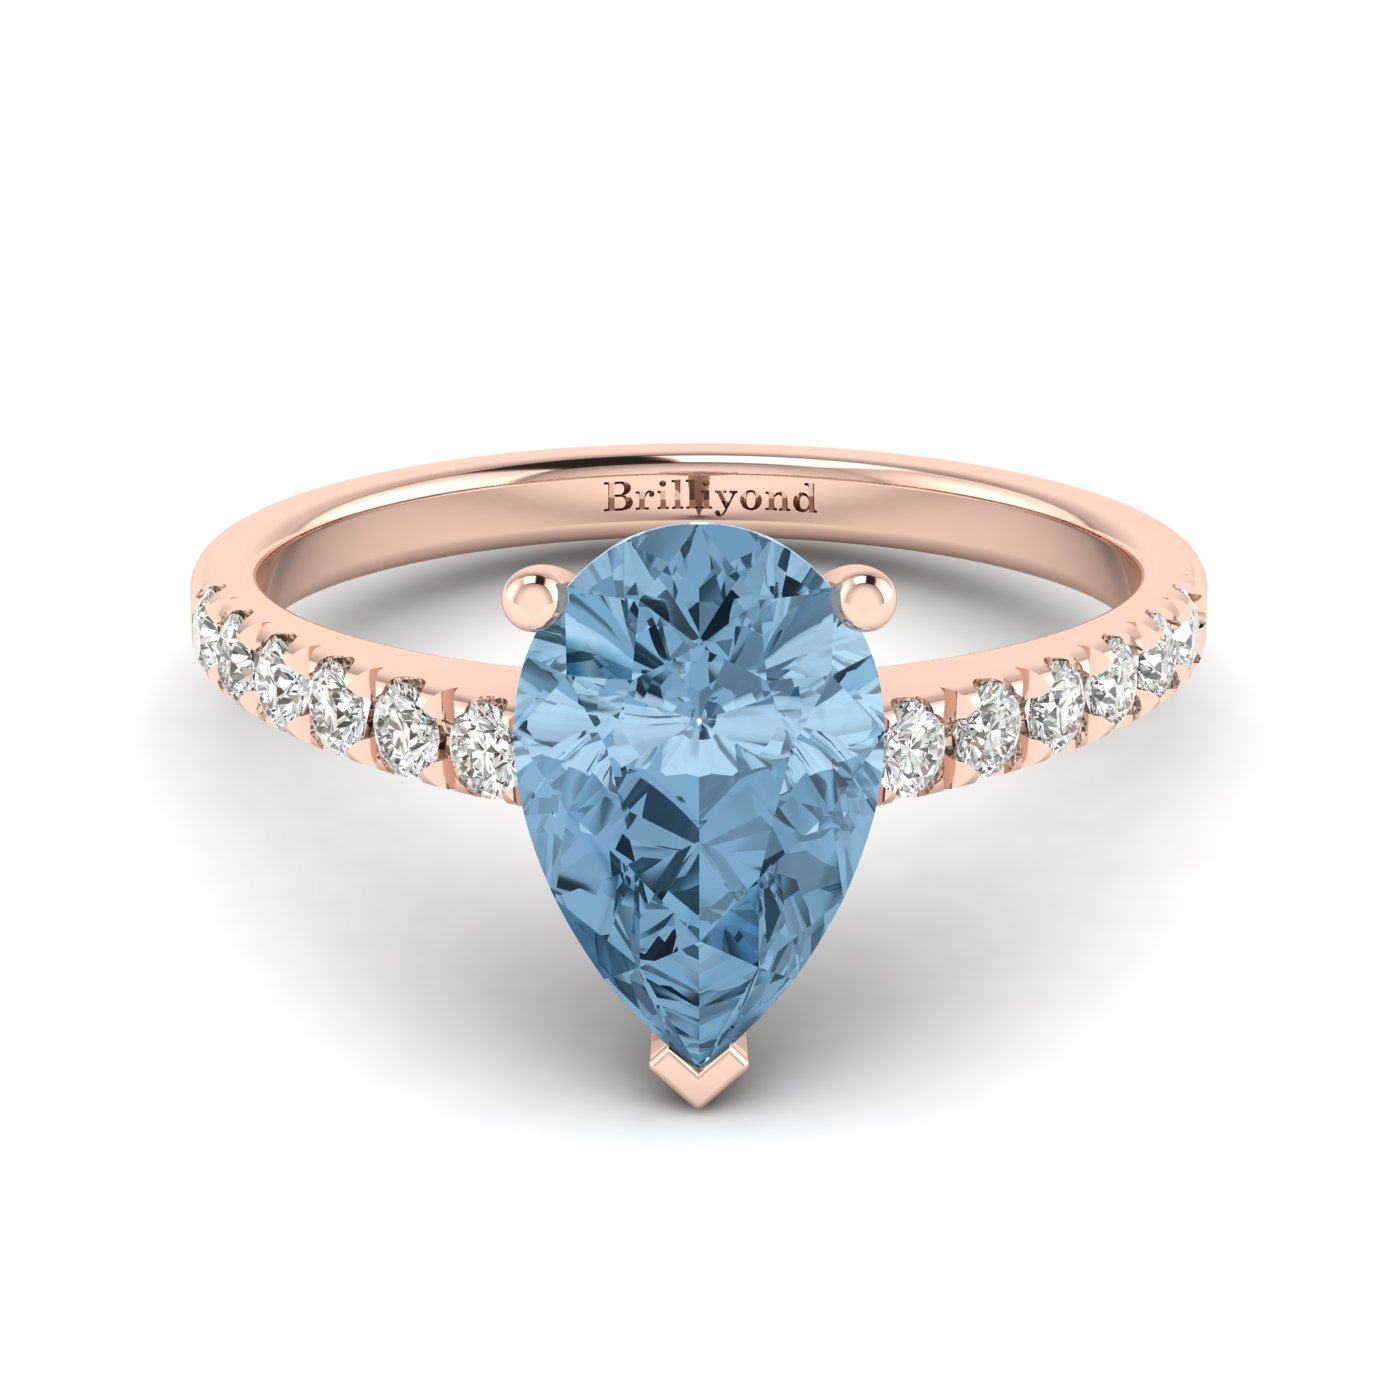 Rose Gold Solitaire Engagement Ring with Aquamarine Centre Stone